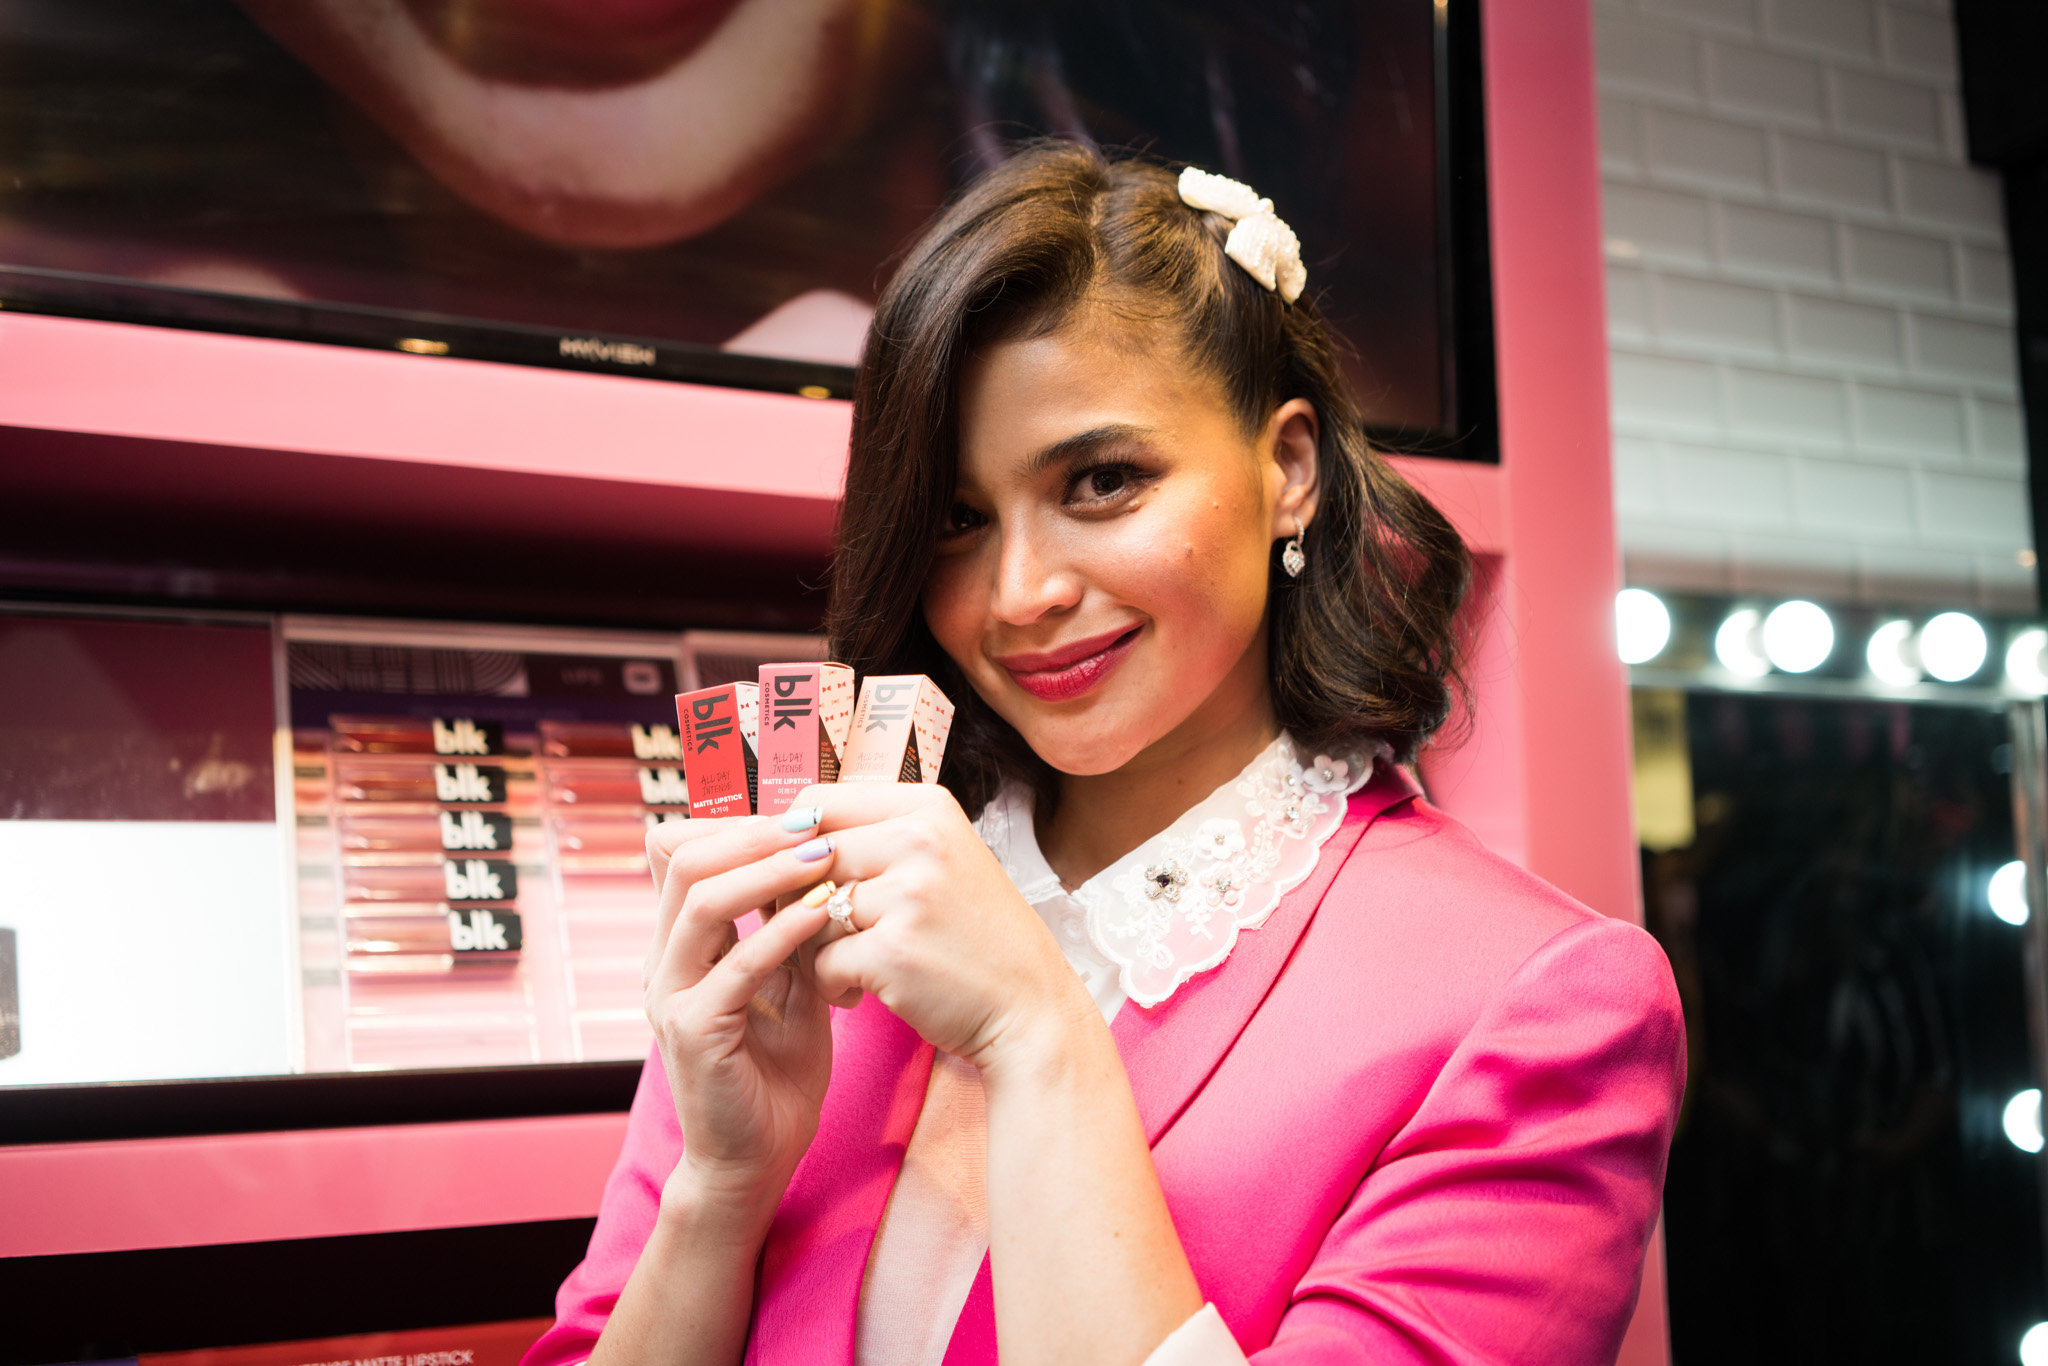 LIPPIE LOVE. The star shows some of the brand's best-selling lipsticks.